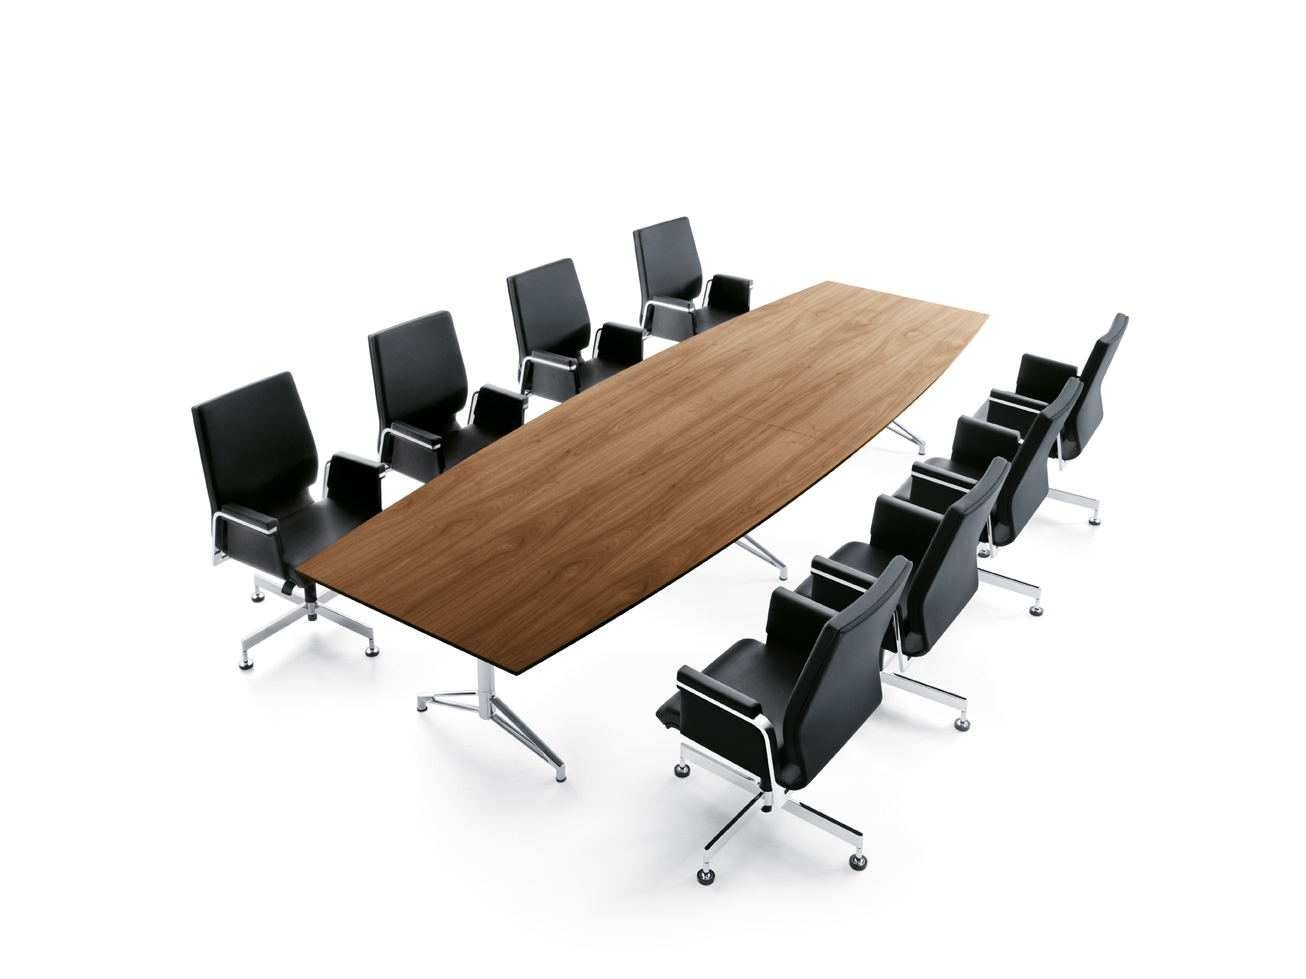 Whatever You Choose For Your Boardroom, It Needs To Not Only Be Comfortable  But Appealing And Pleasing To The Eye. Chairs For The Table Also Need To  Match ...